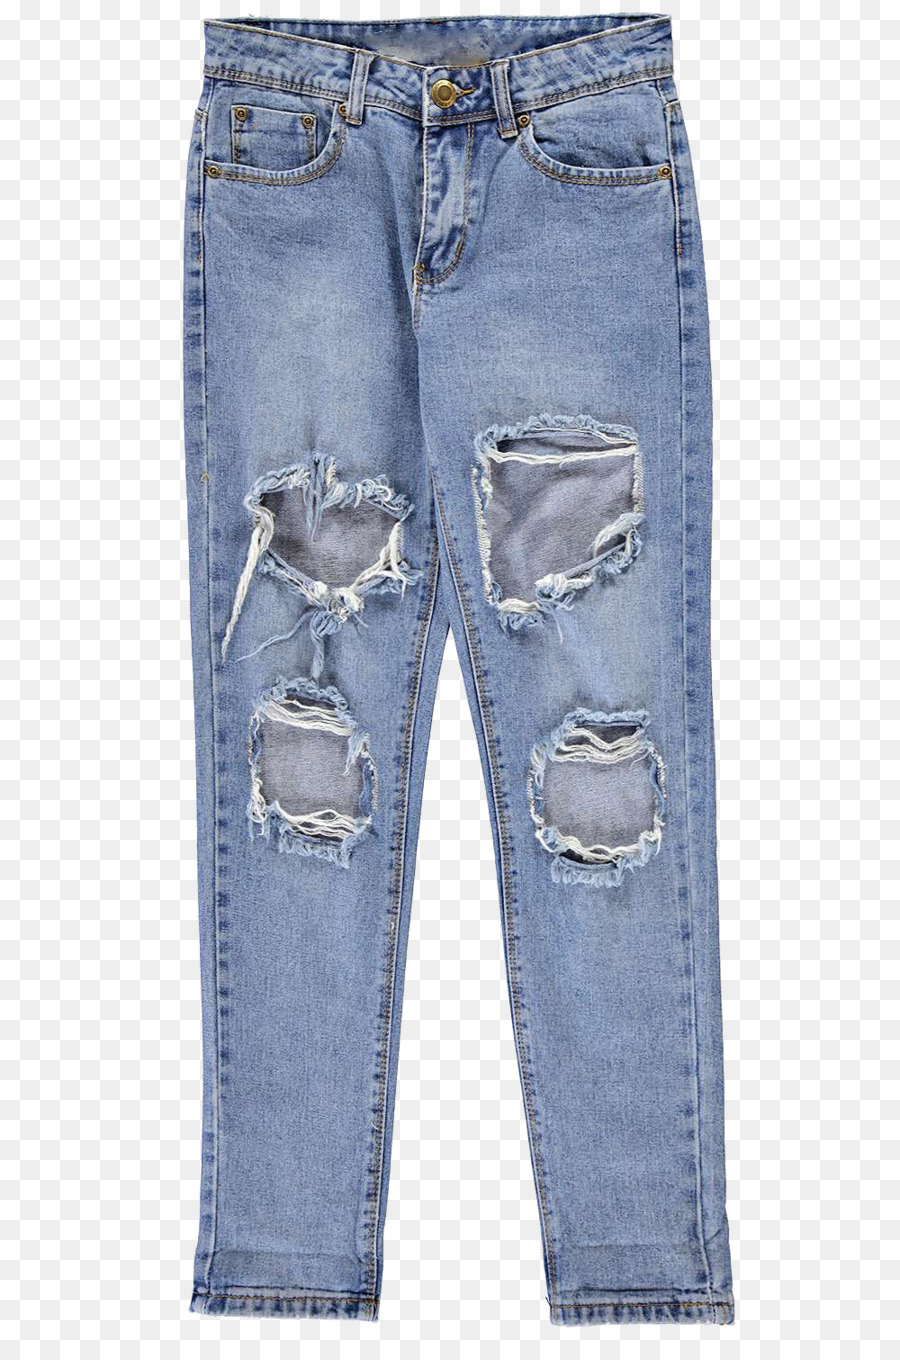 Ripped Jeans Png & Free Ripped Jeans.png Transparent Images.